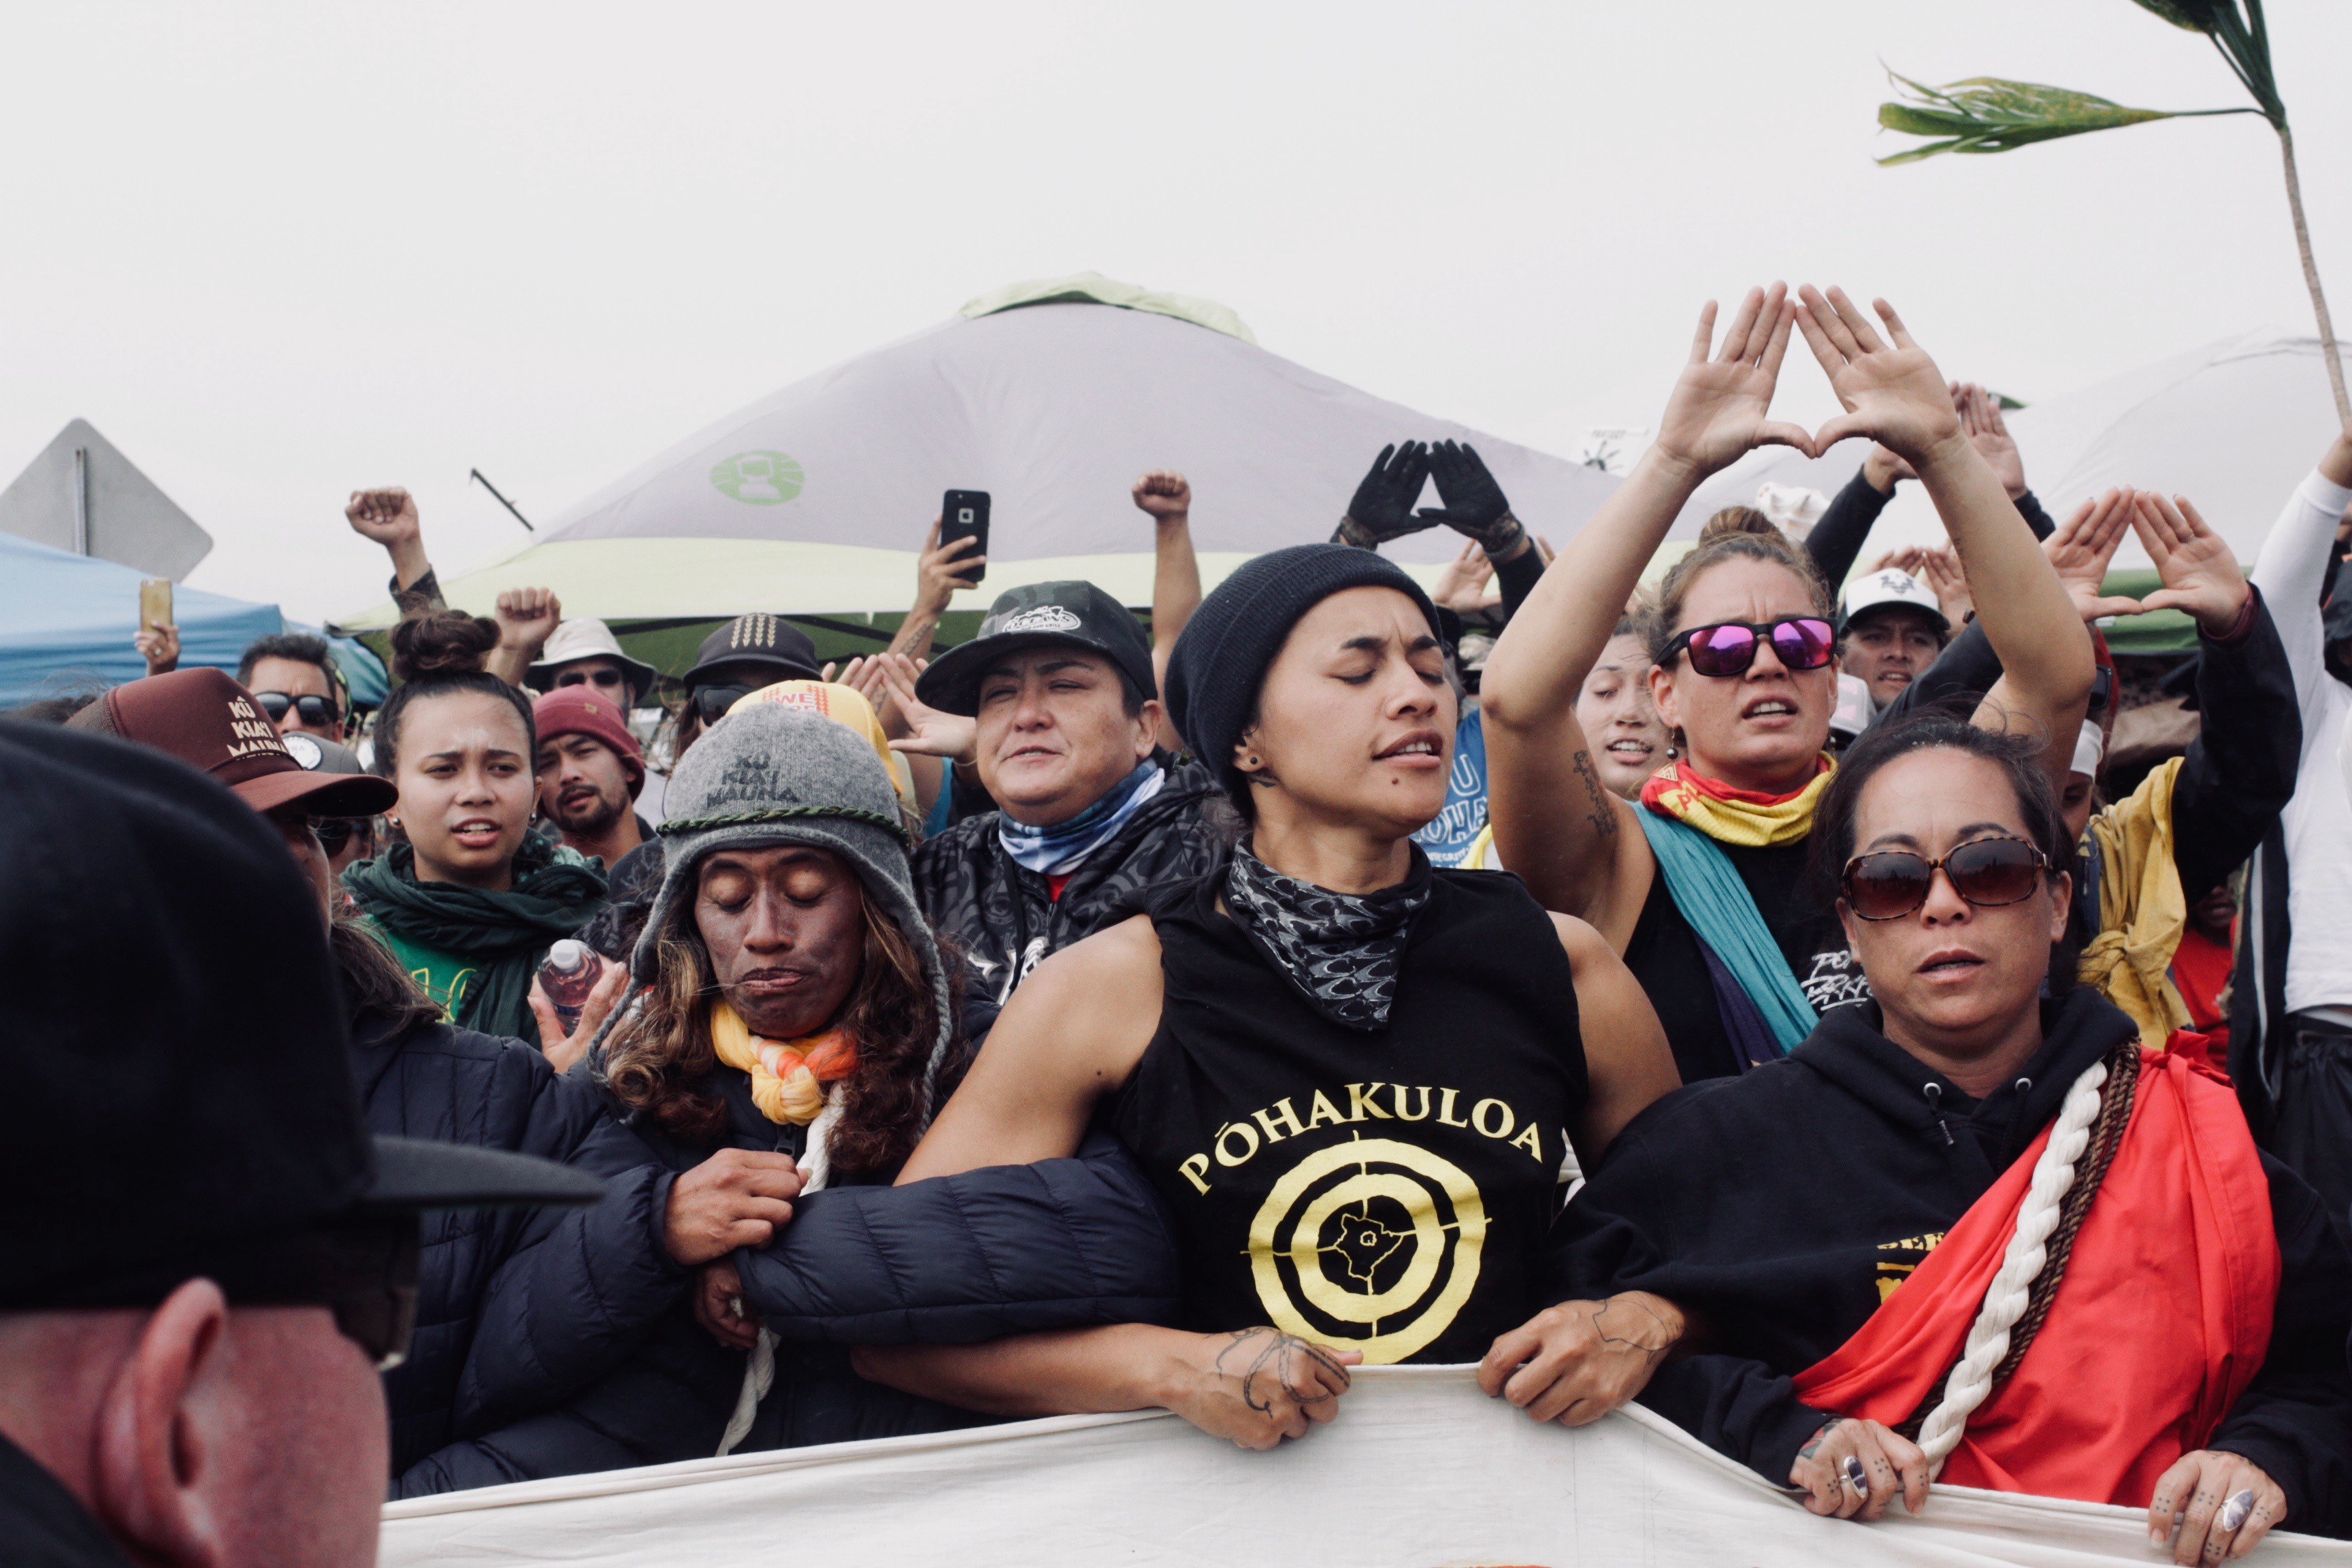 A photo of womxn and nonbinary folx creating a human barrier between the police and the kūpuna.